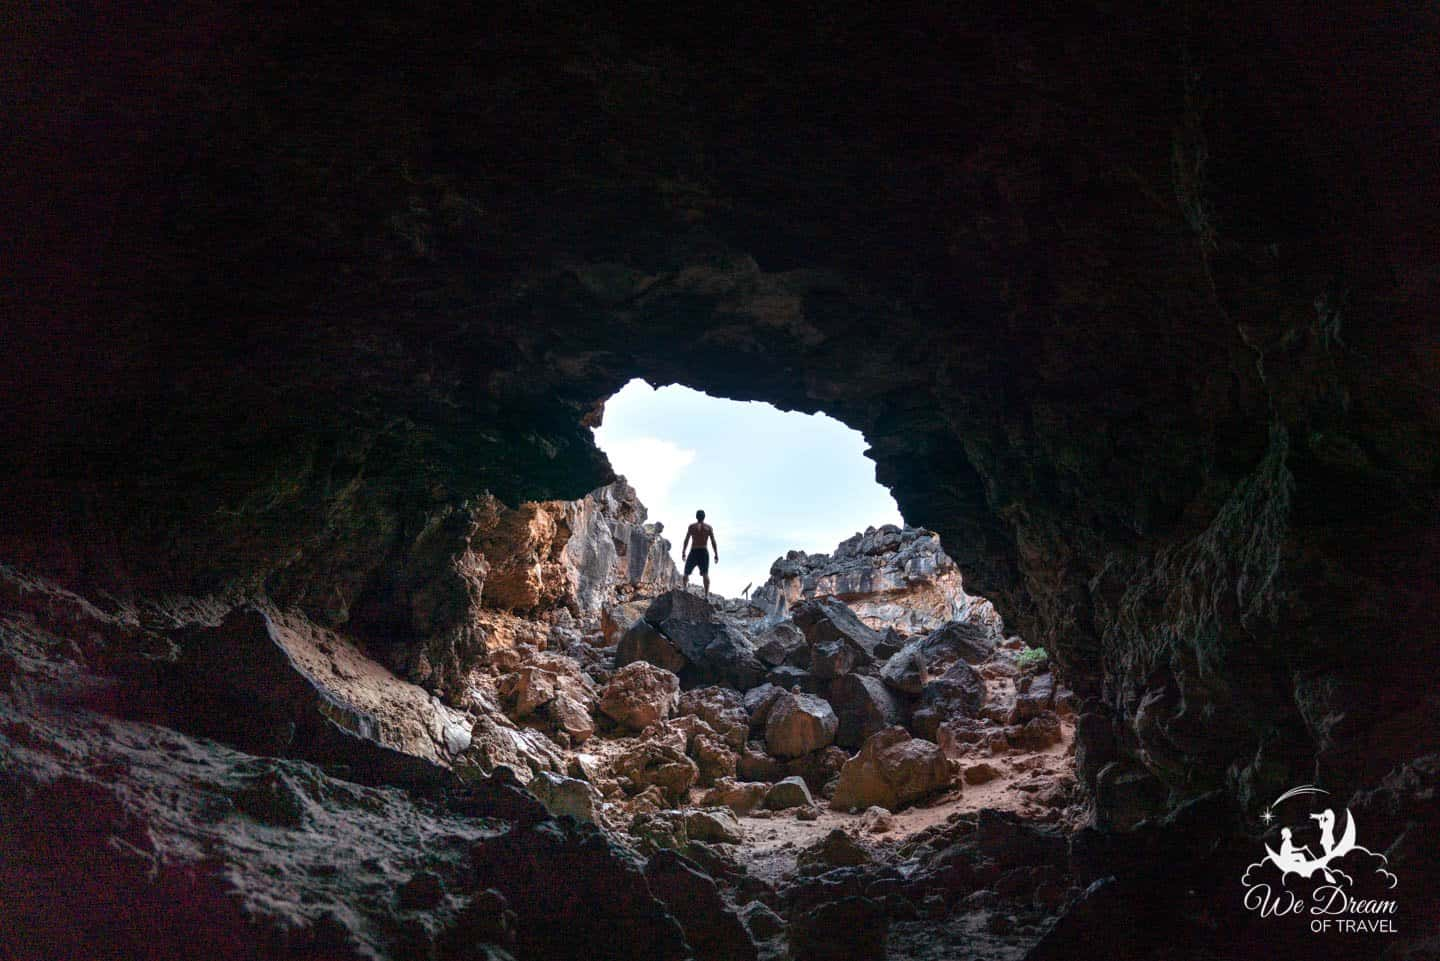 A man standing, silhouetted at the entrance of a lava tube in Snow Canyon State Park